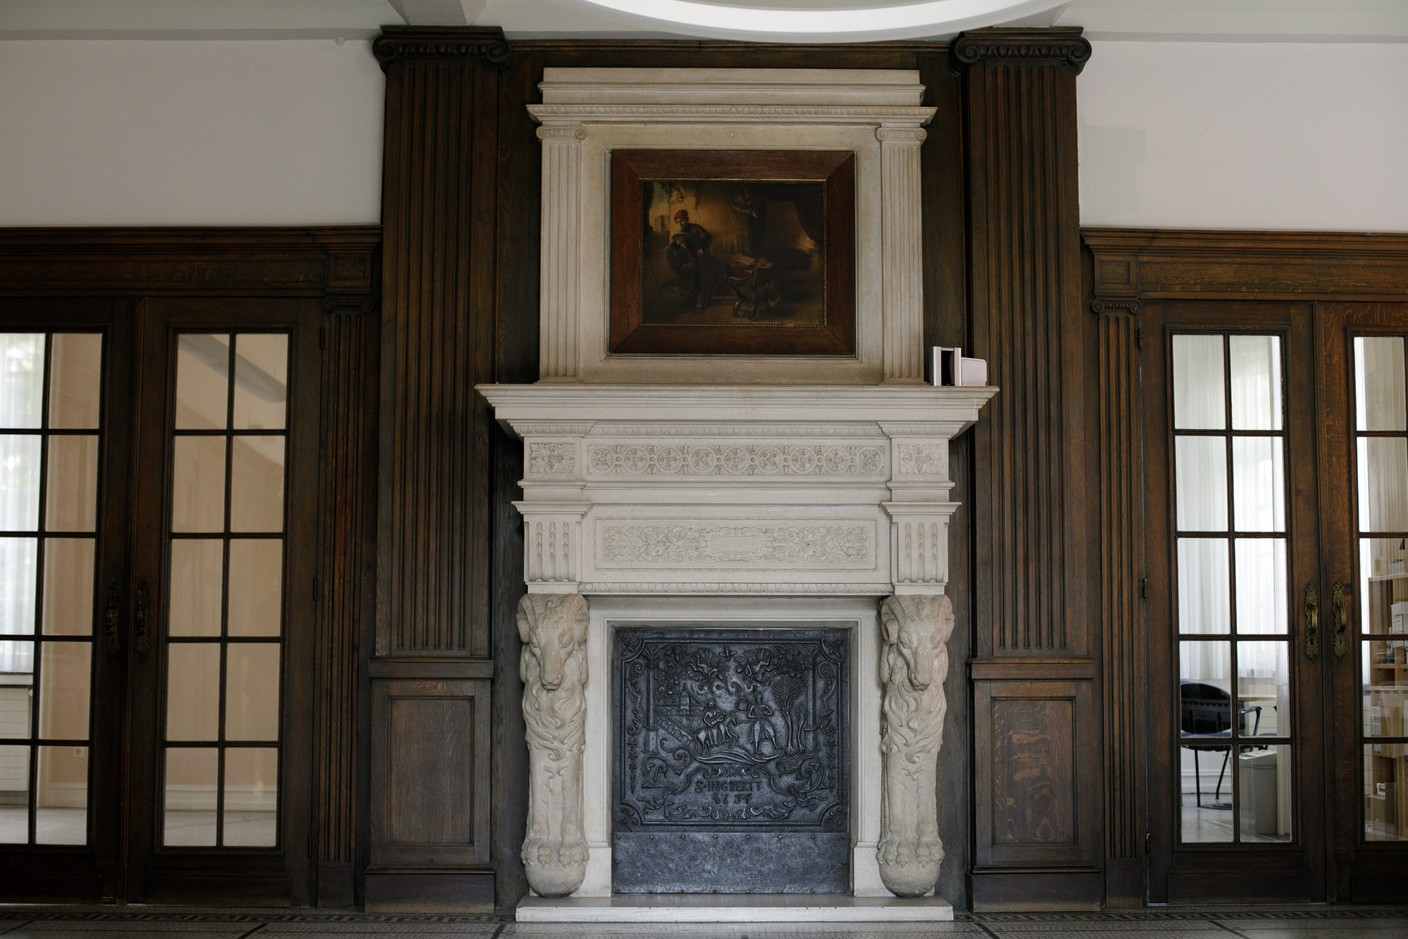 An old fireplace in the main entrance Matic Zorman / Maison Moderne